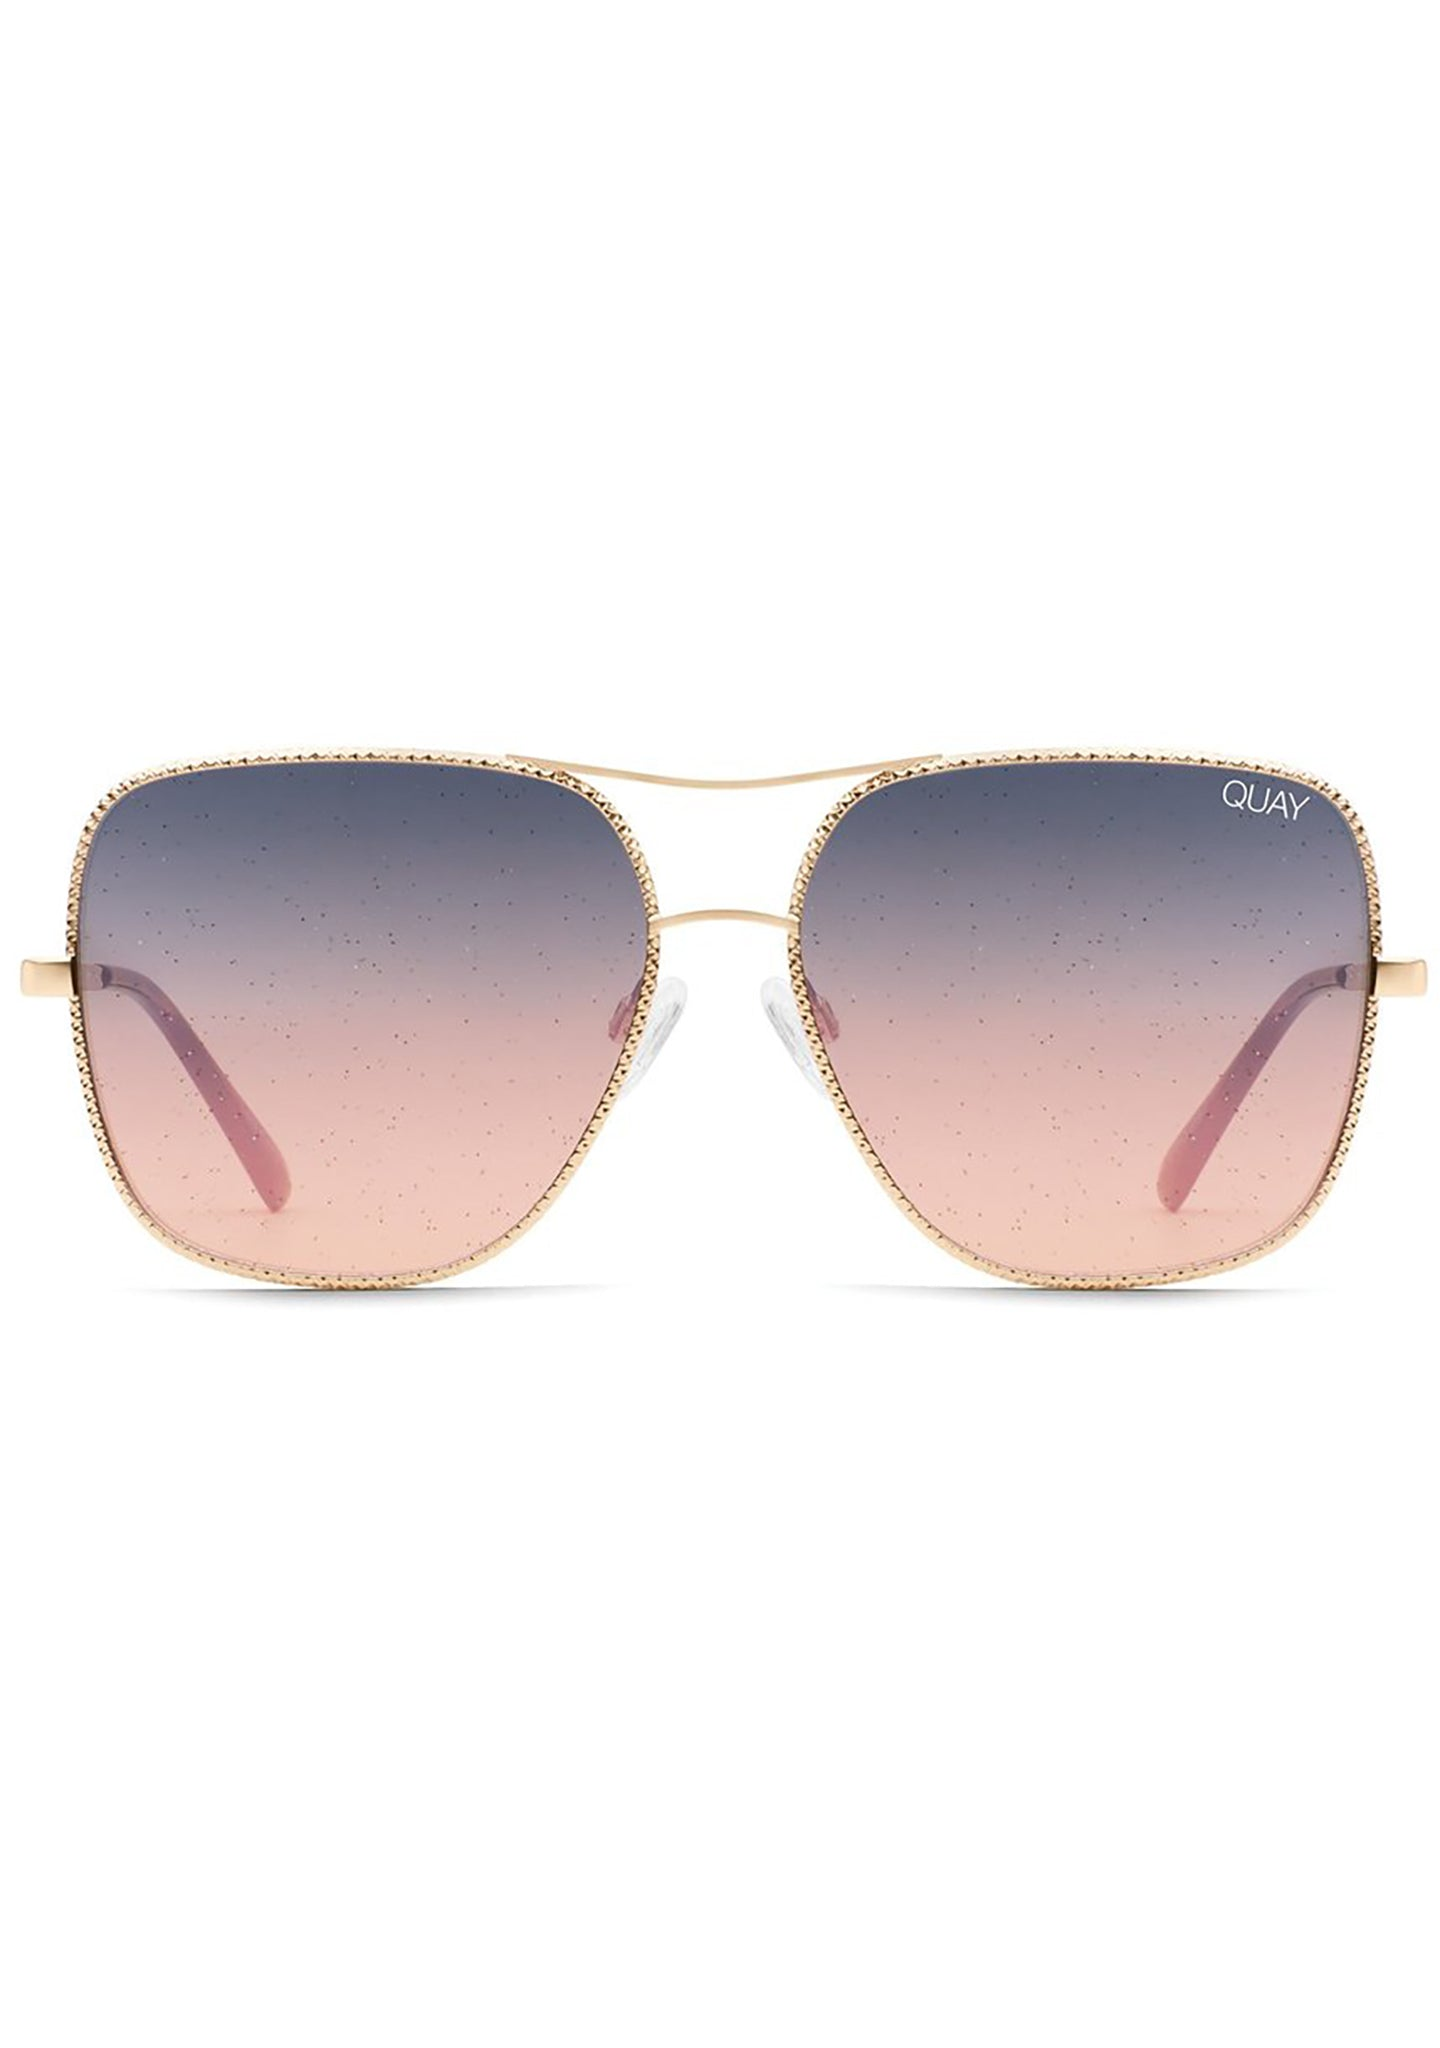 Stop And Stare Twist Sunglasses in Gold Navy Peach